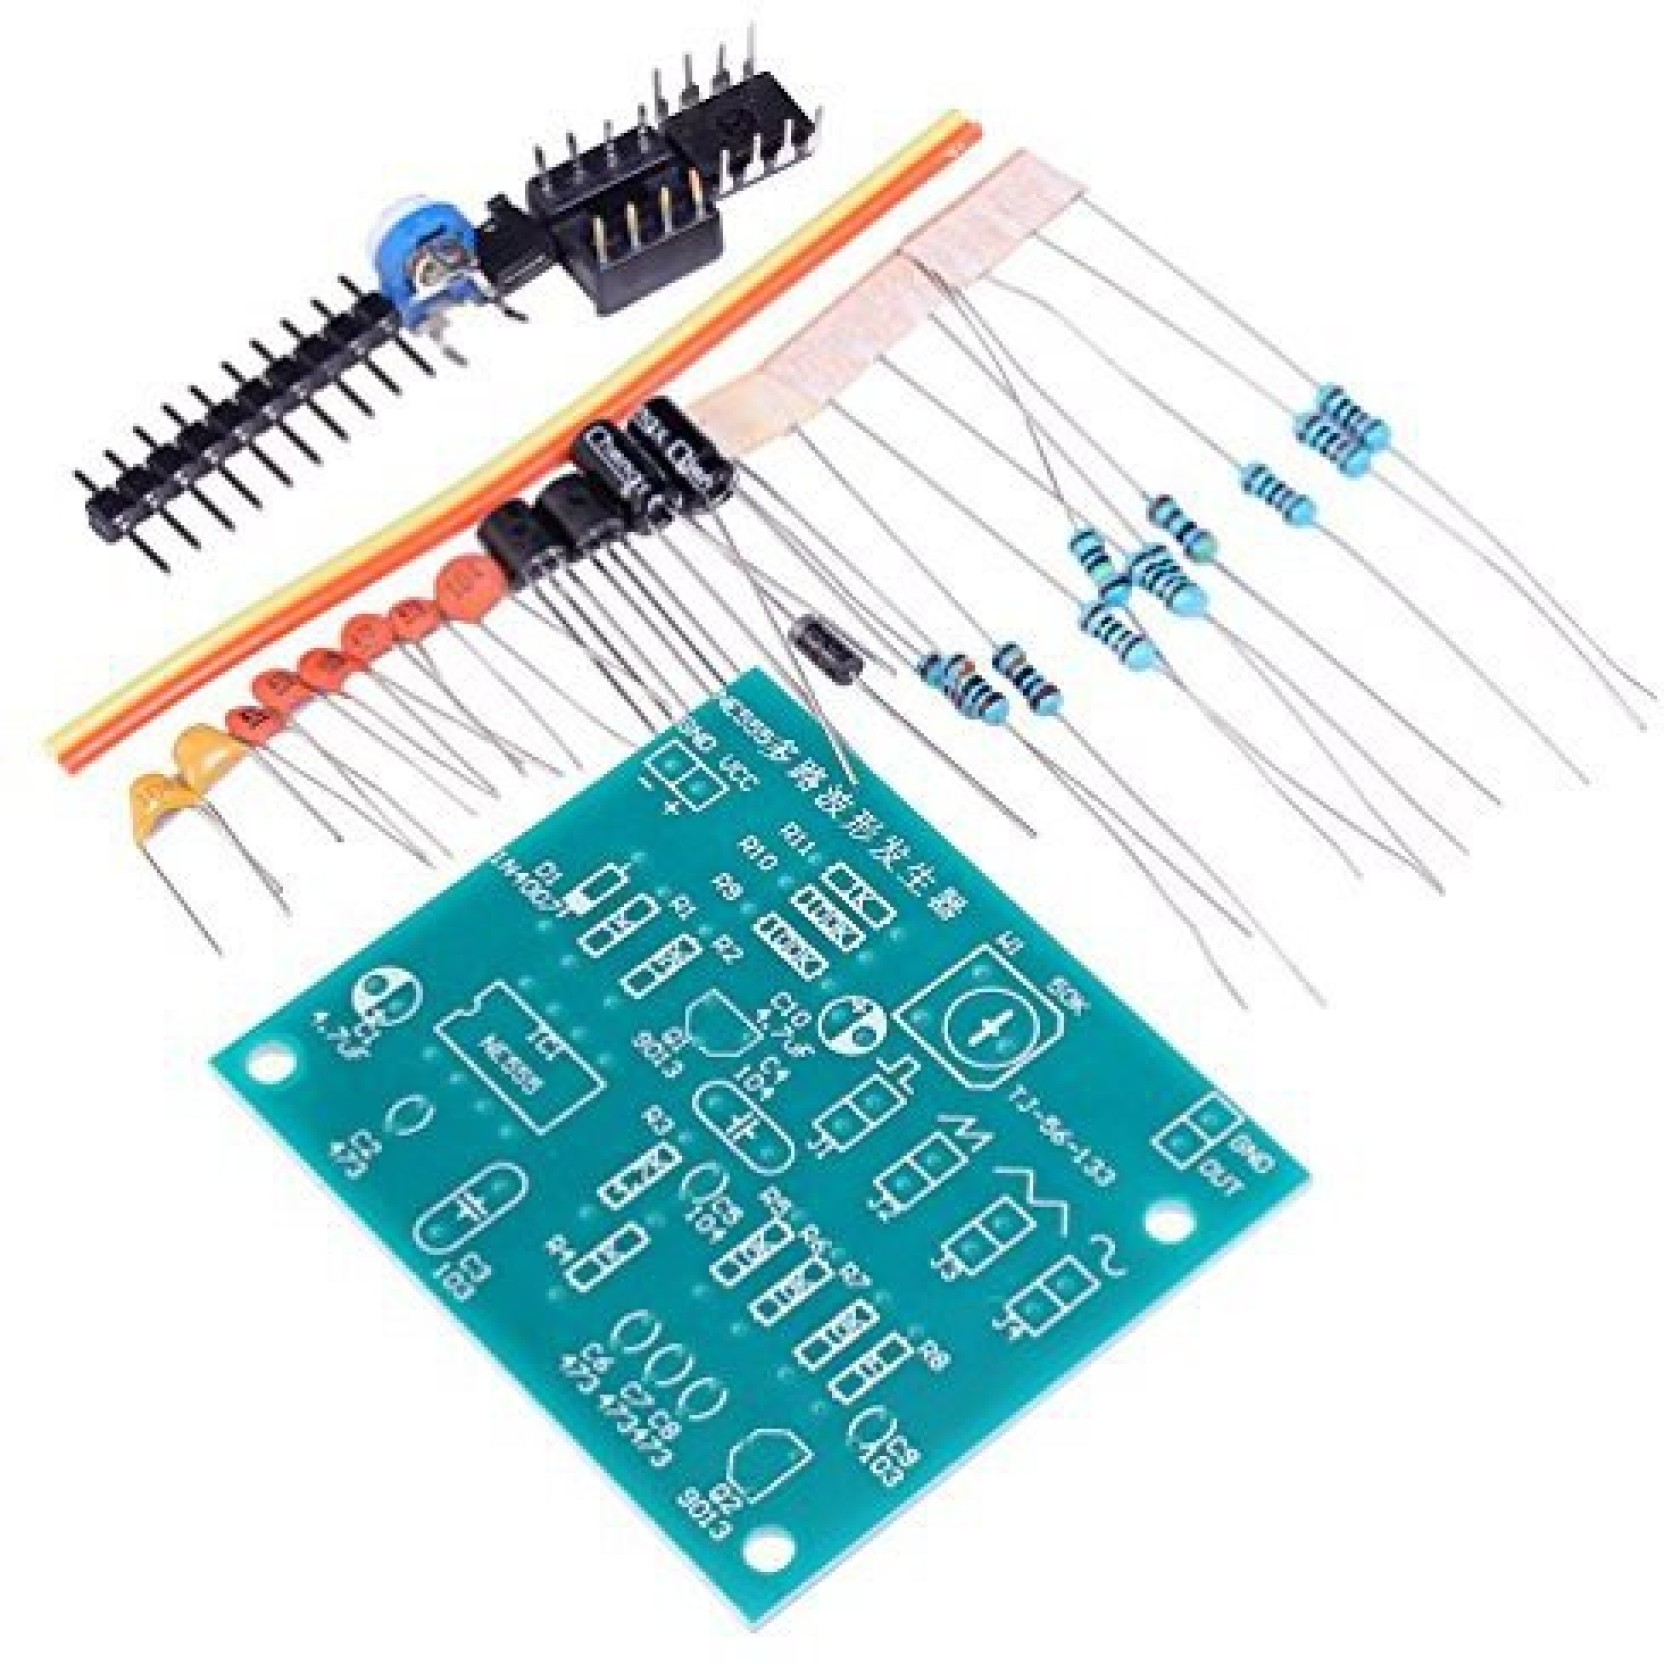 Generic Whdts Ne555 Multi Channel Wave Generator Sine Triangle Squarewave Circuit Square Sawtooth Diy Kits Soldering On Offer